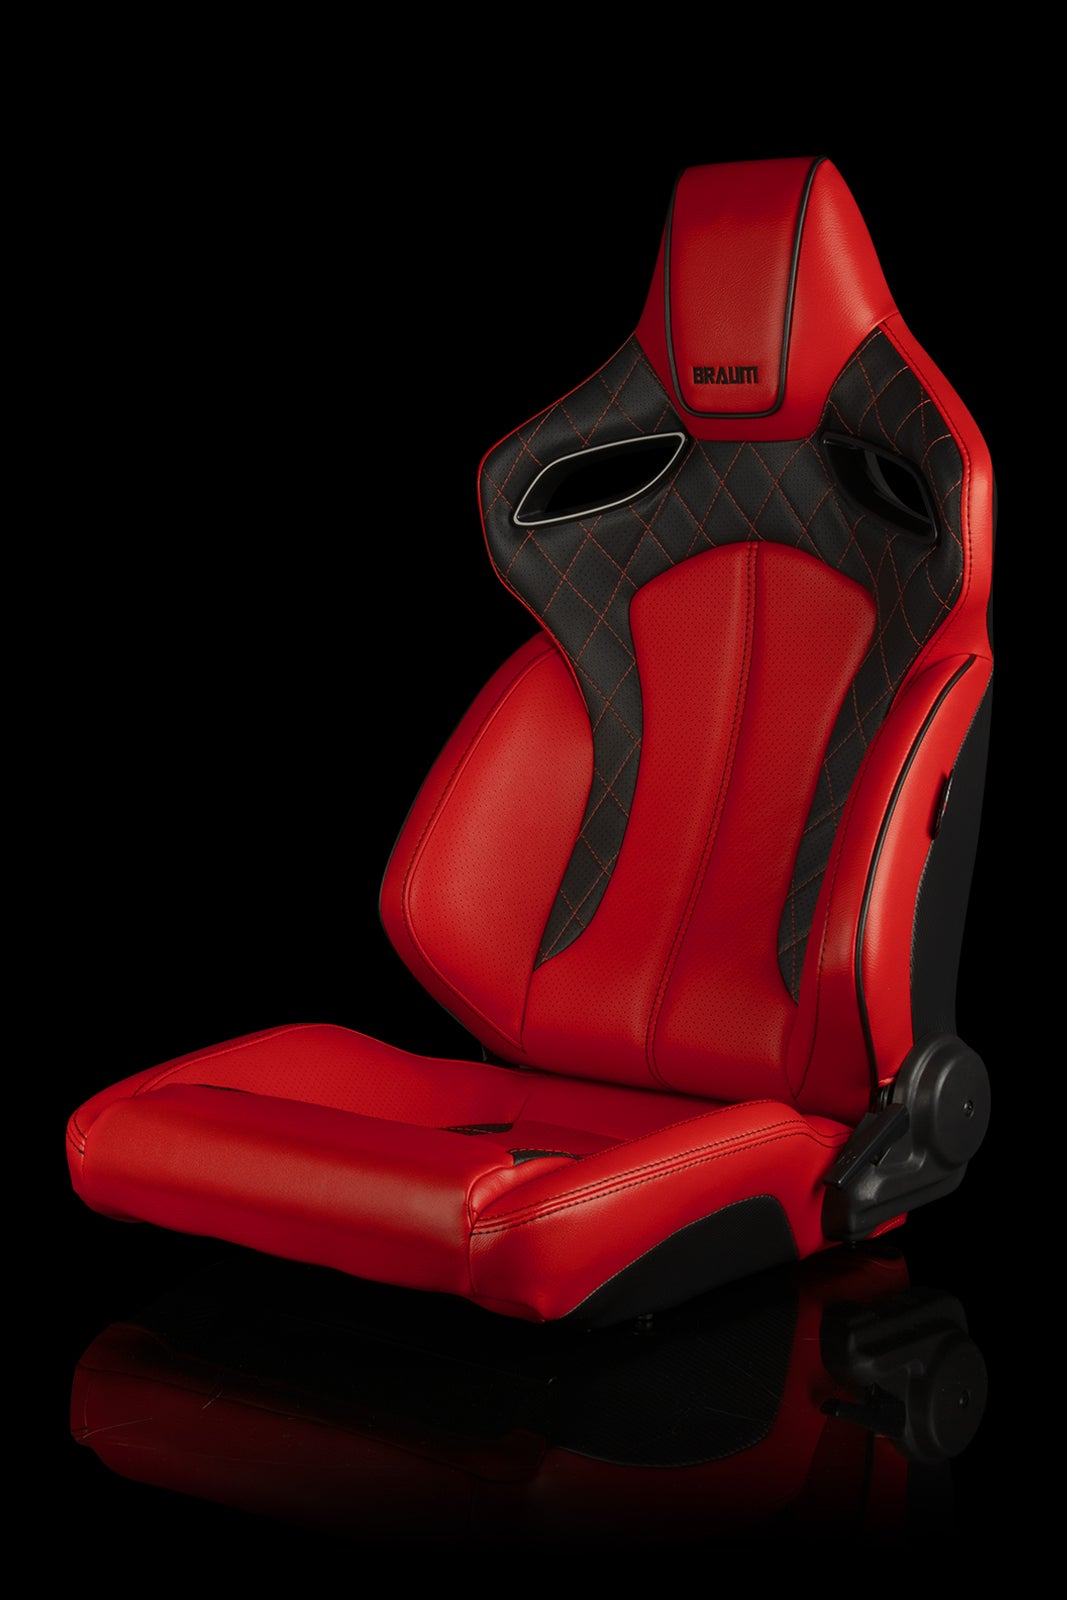 Image of Orue Series - BRAUM Racing Seats - Universal - PAIR